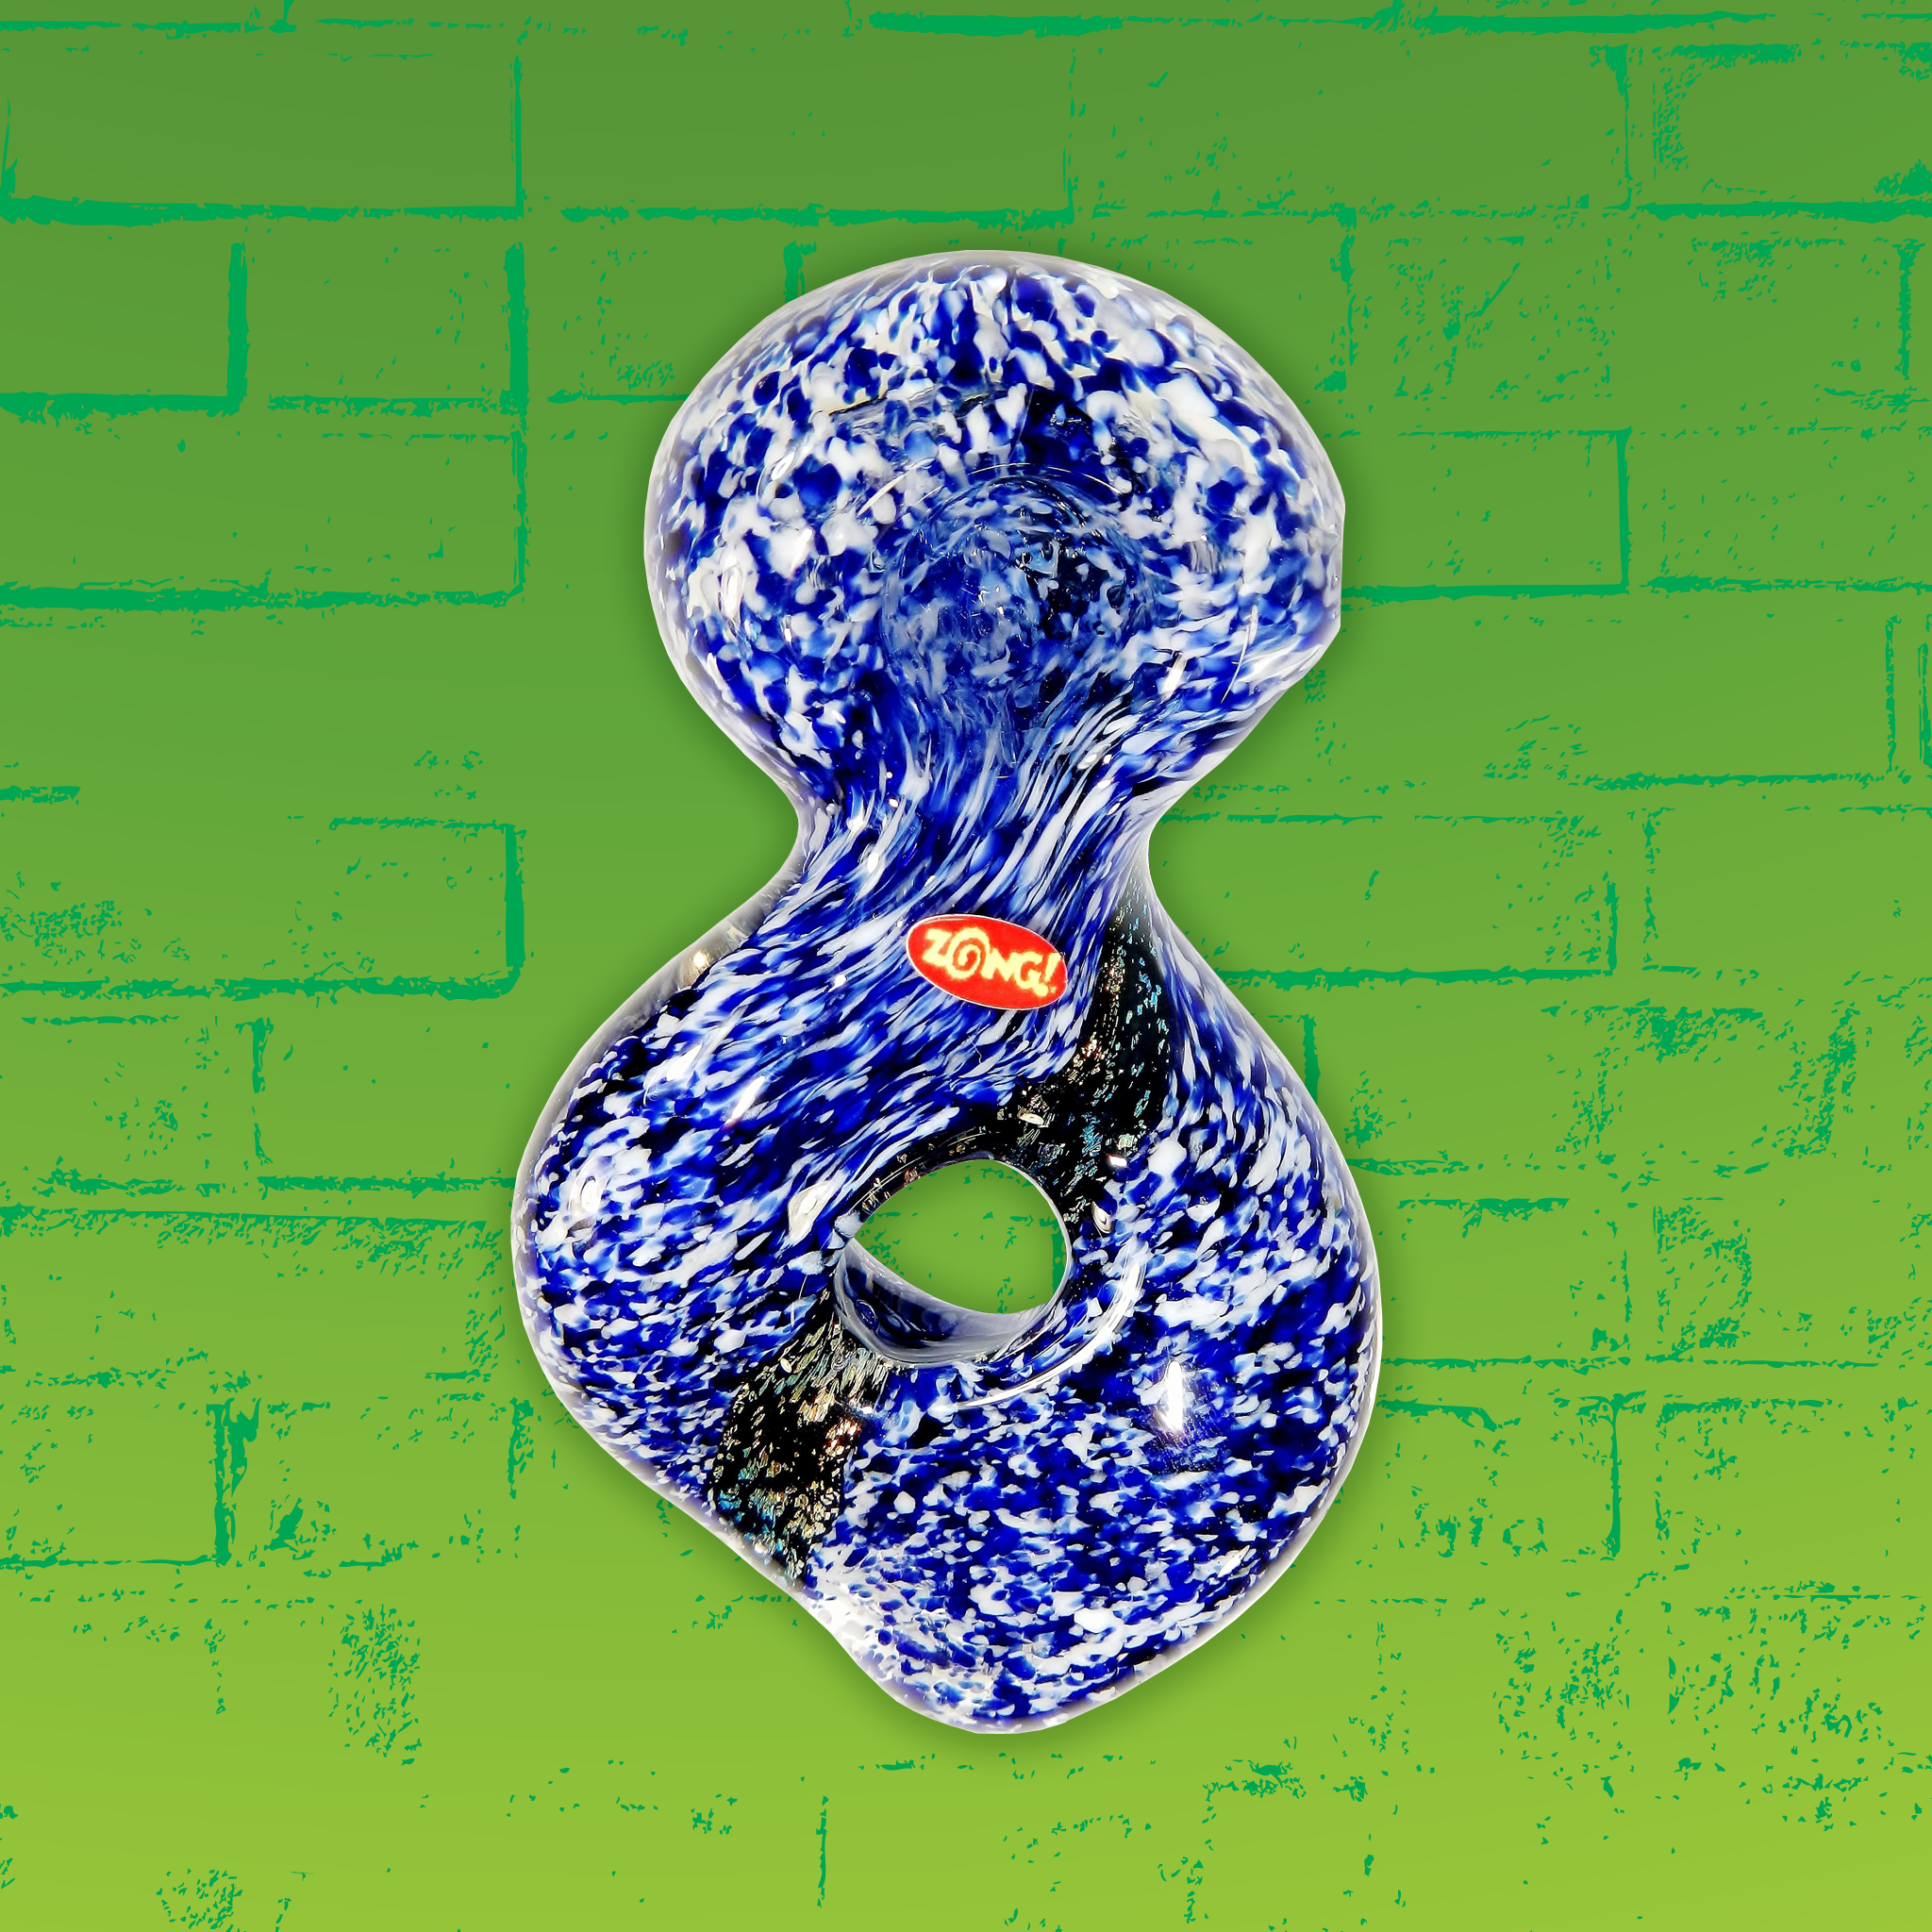 Zong Navy Blue & White Donut Style Spoon with Dicro Swirl